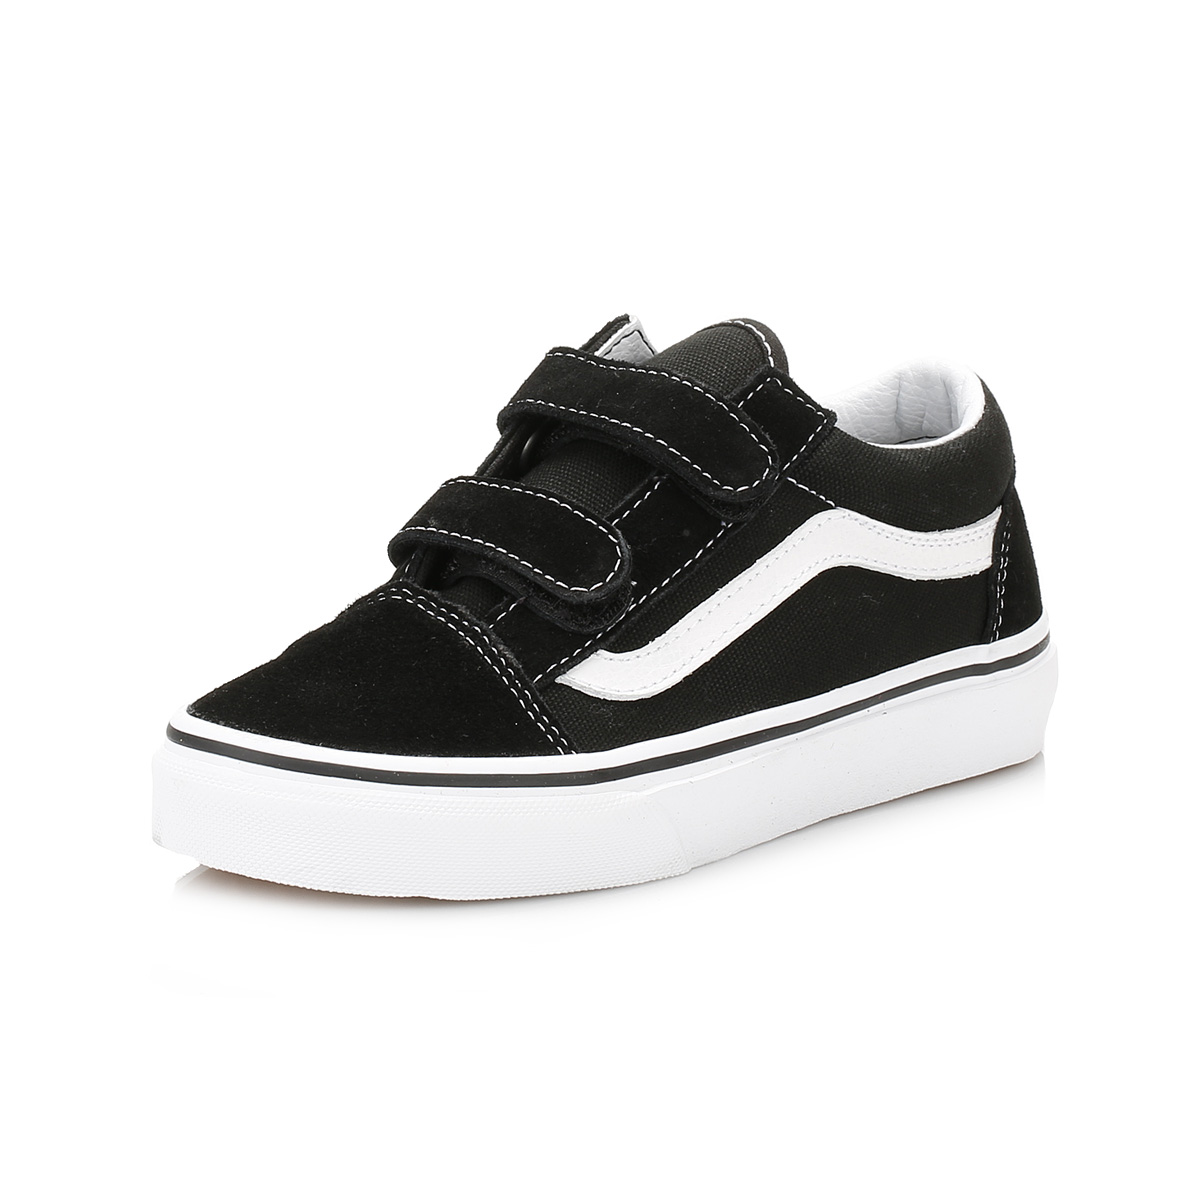 vans old skool black & white trainers